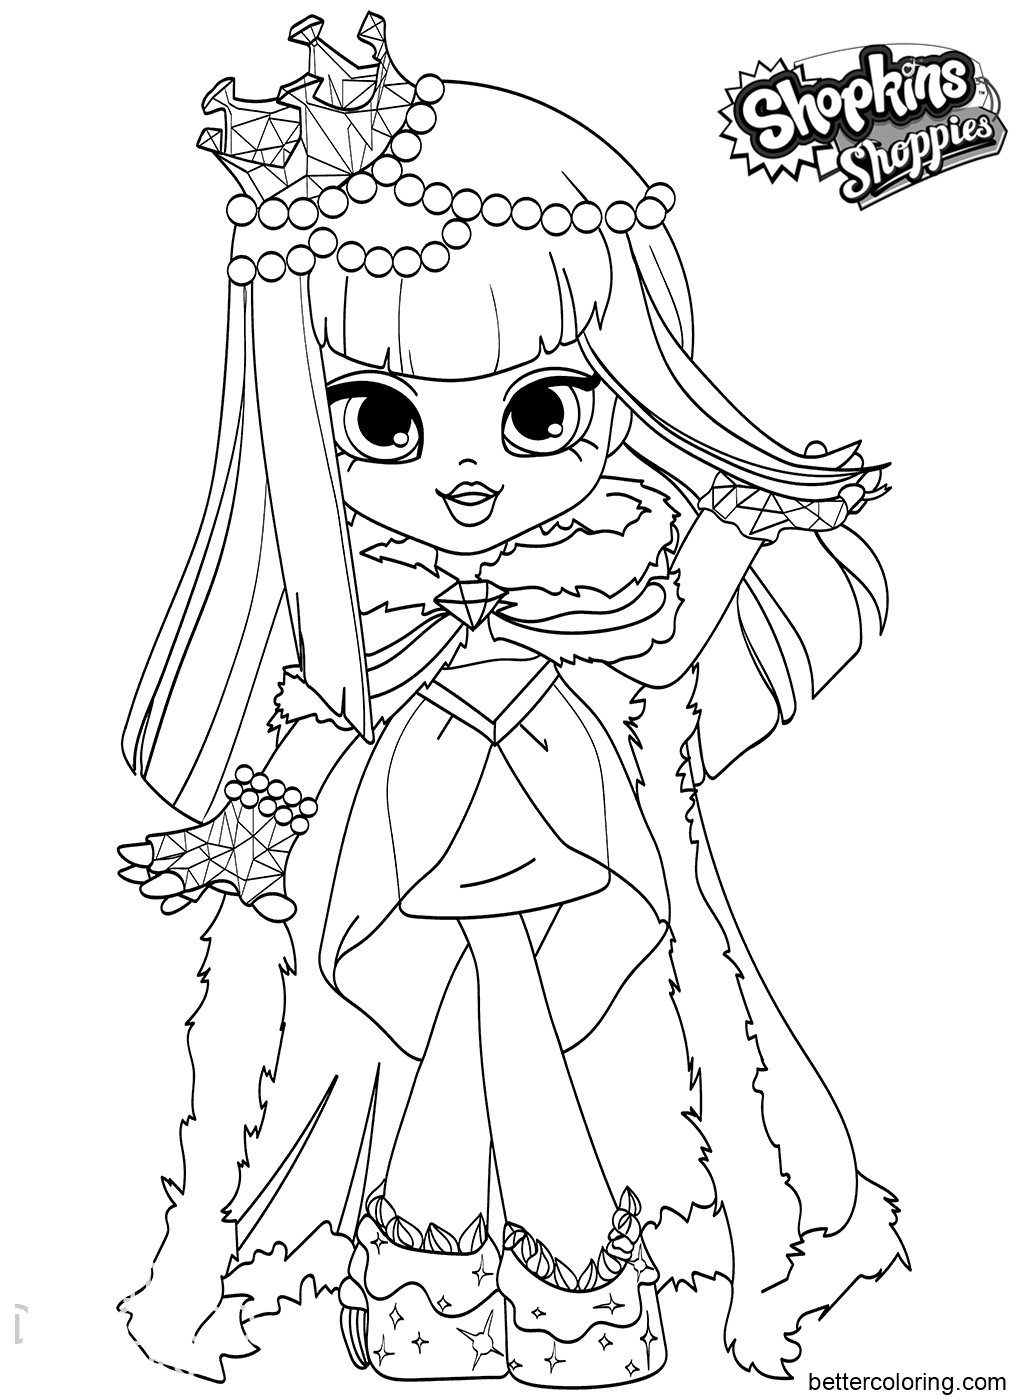 free printout coloring pages | Shoppies Coloring Page - Free Printable Coloring Pages